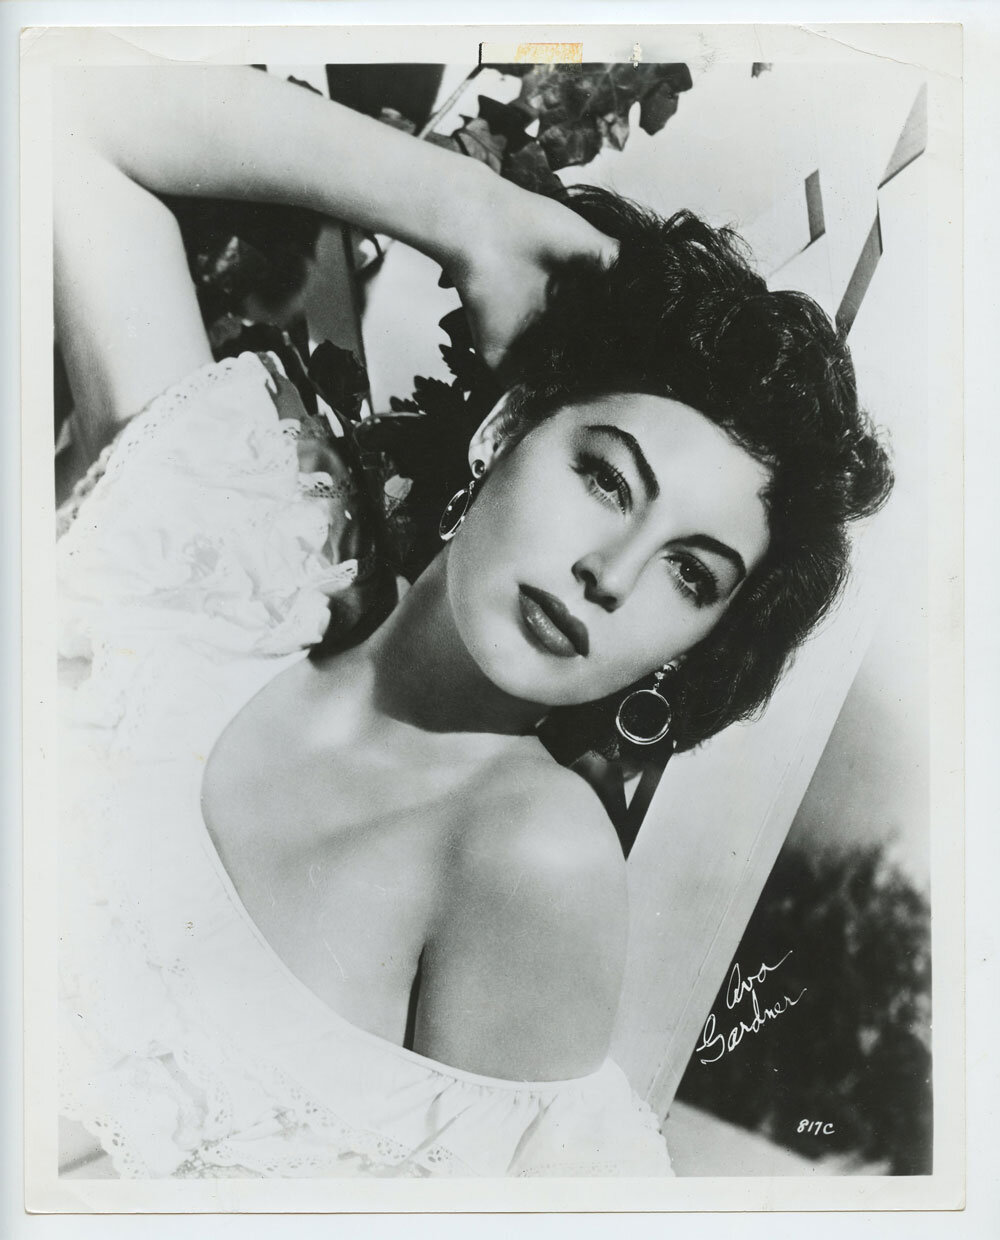 Ava Gardner Photo 1954 The Barefoot Contessa